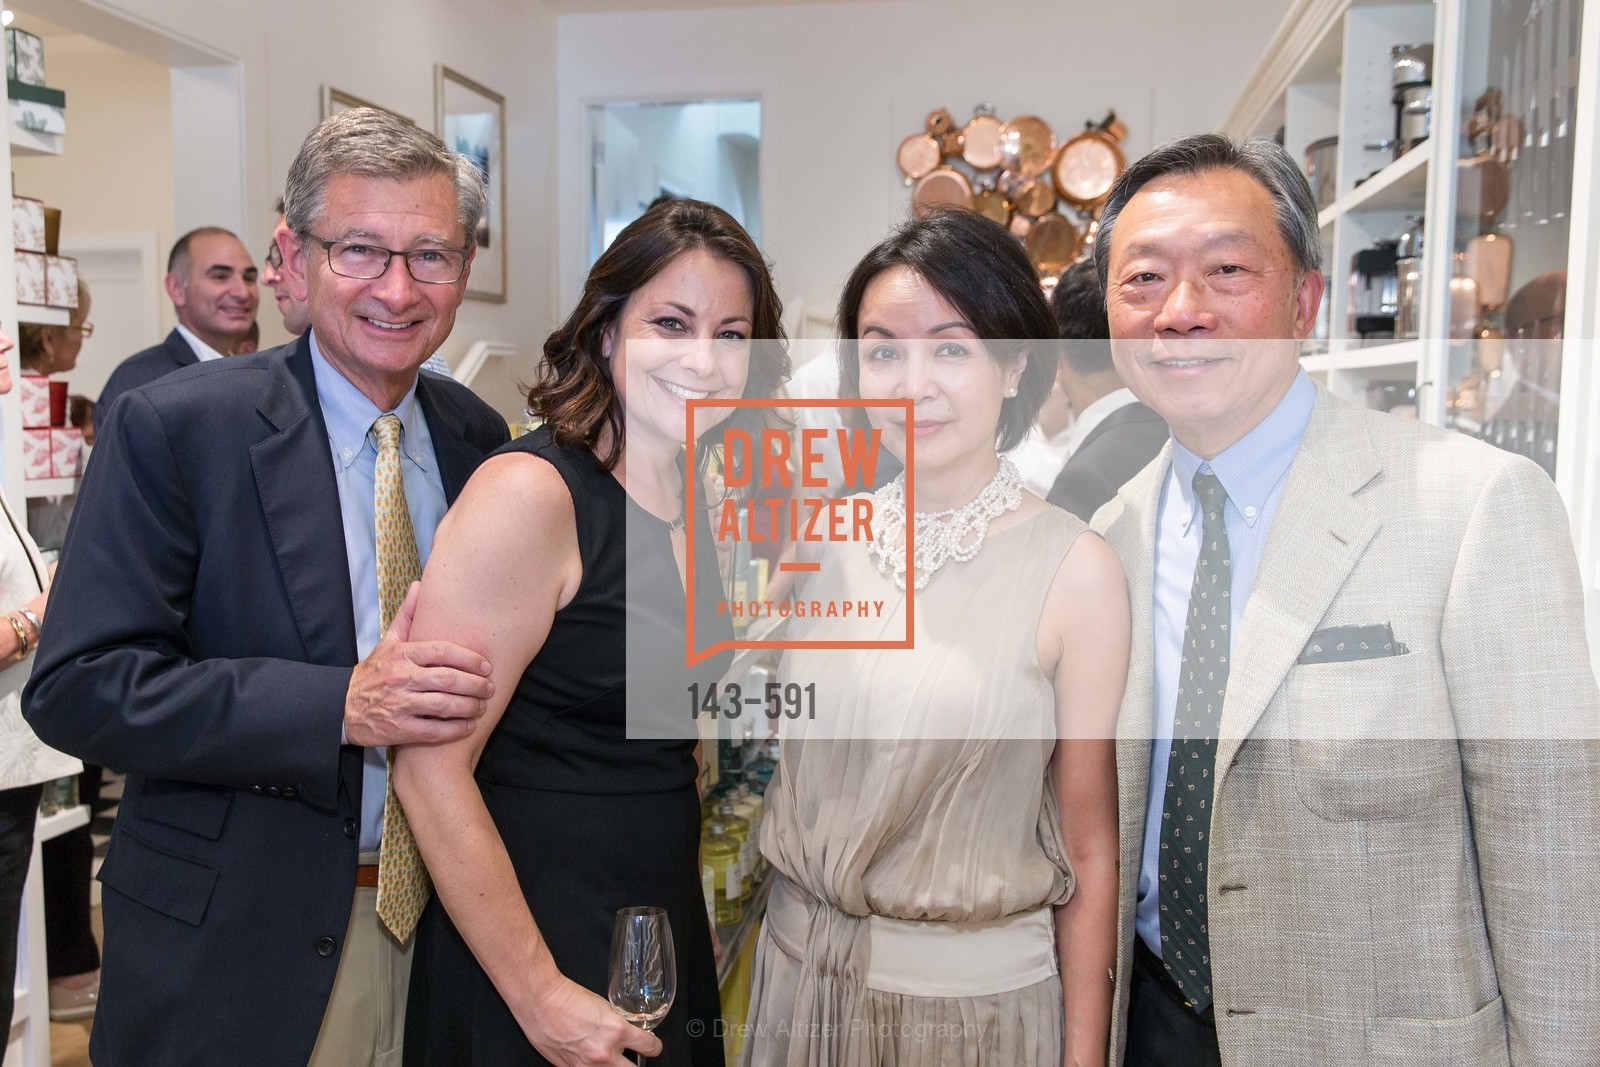 Pat Connolly, Michelle Foss, Helen Cheng, Stanley Cheng, CHUCK WILLIAMS Birthday Celebration, US, October 3rd, 2014,Drew Altizer, Drew Altizer Photography, full-service agency, private events, San Francisco photographer, photographer california